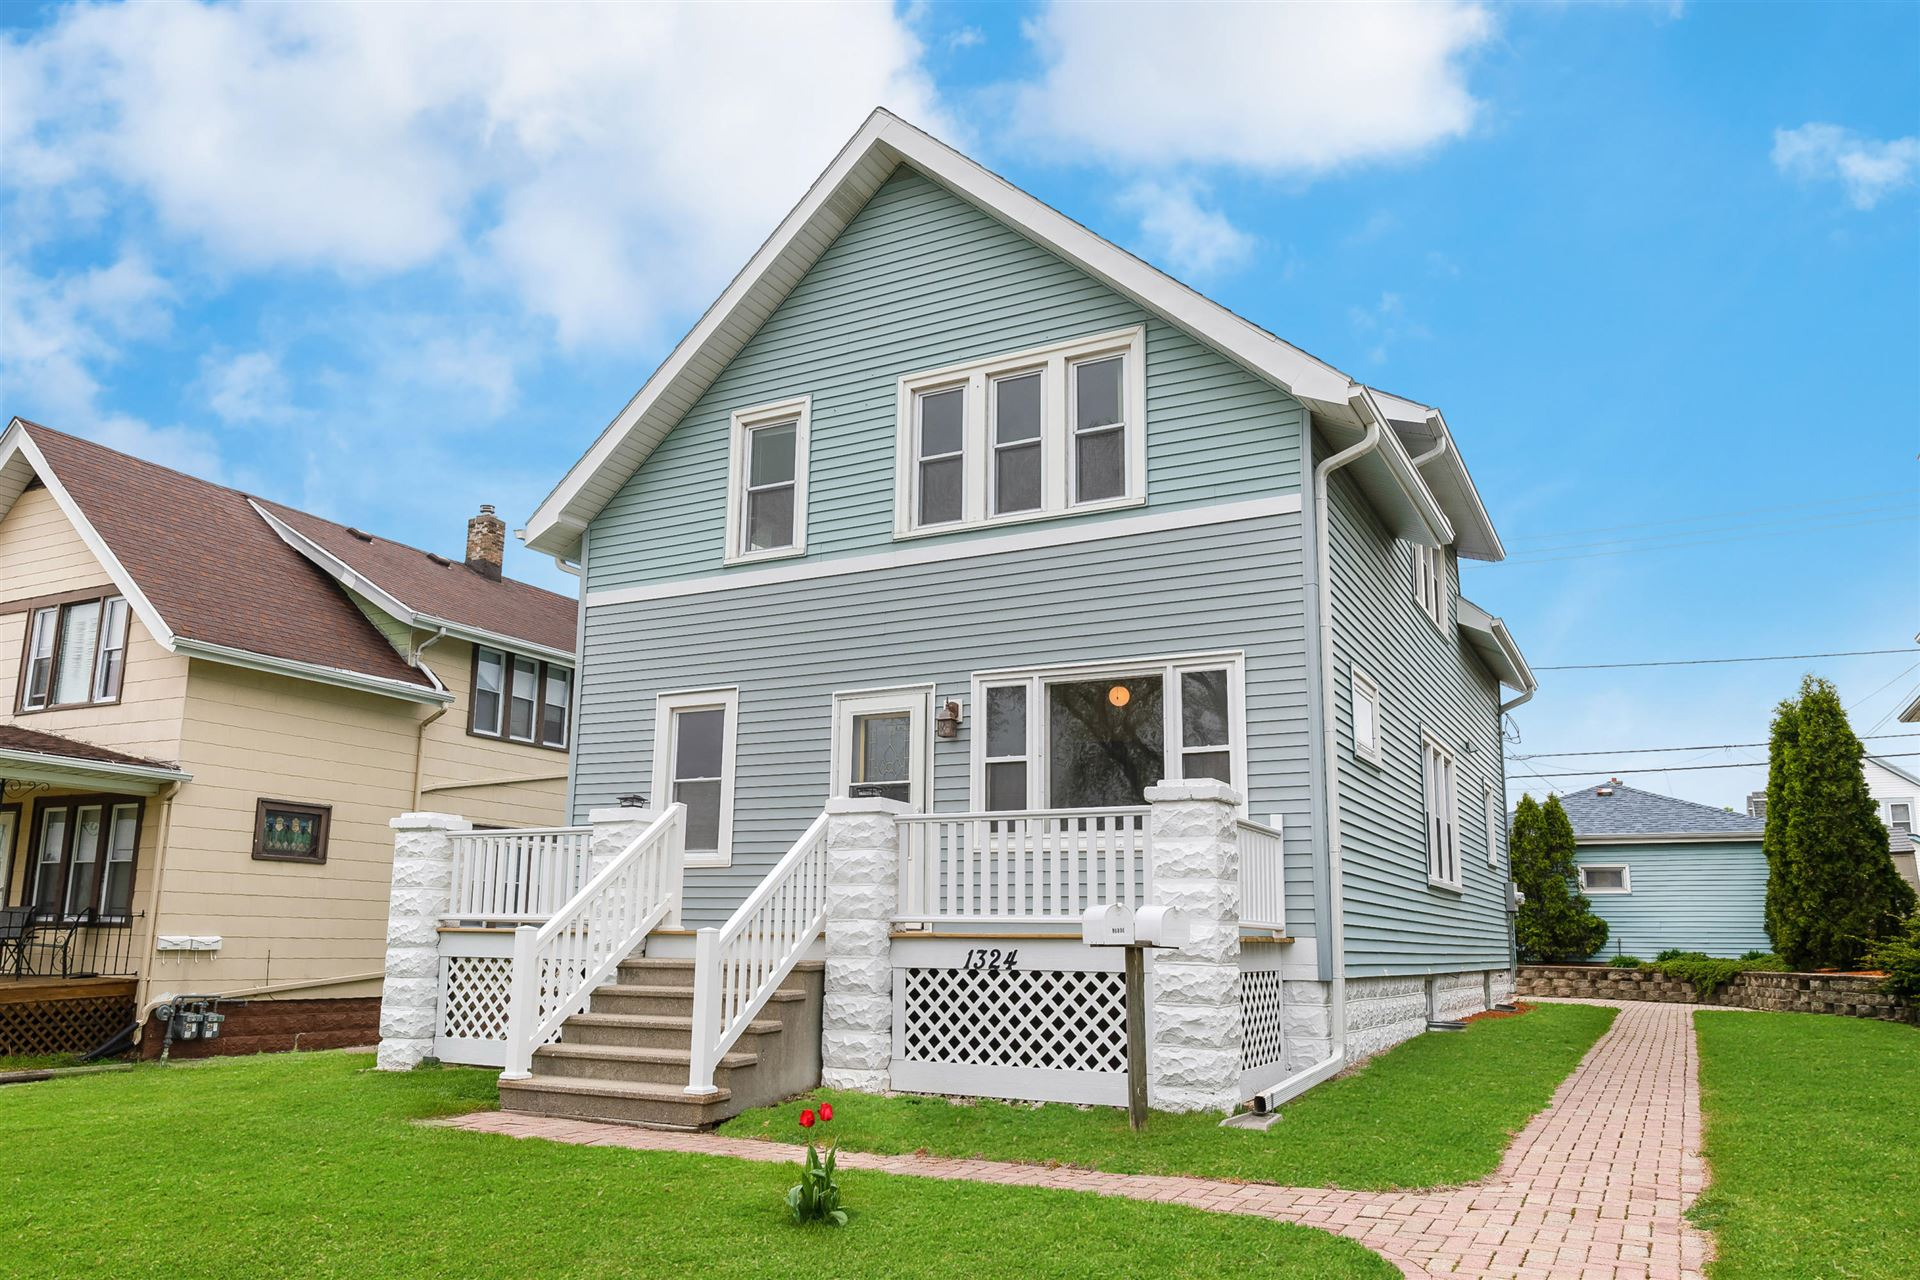 1324 Madison Ave, South Milwaukee, WI 53172 - MLS#: 1739883